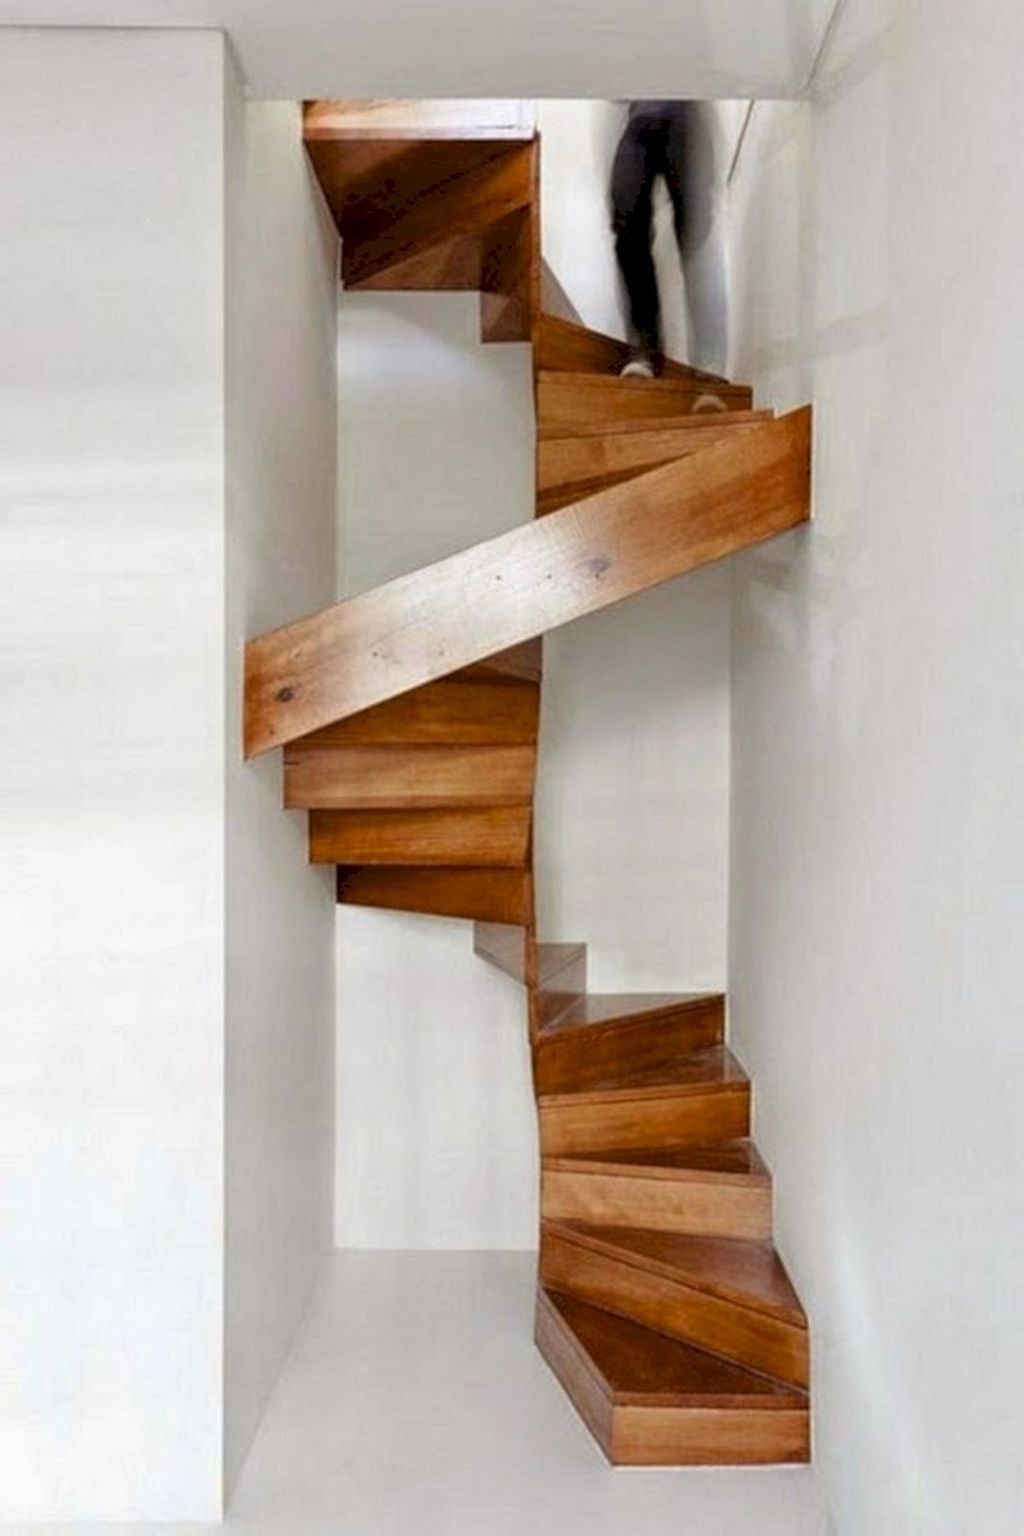 Incredible Stairs Design Ideas For The Attic To Try35